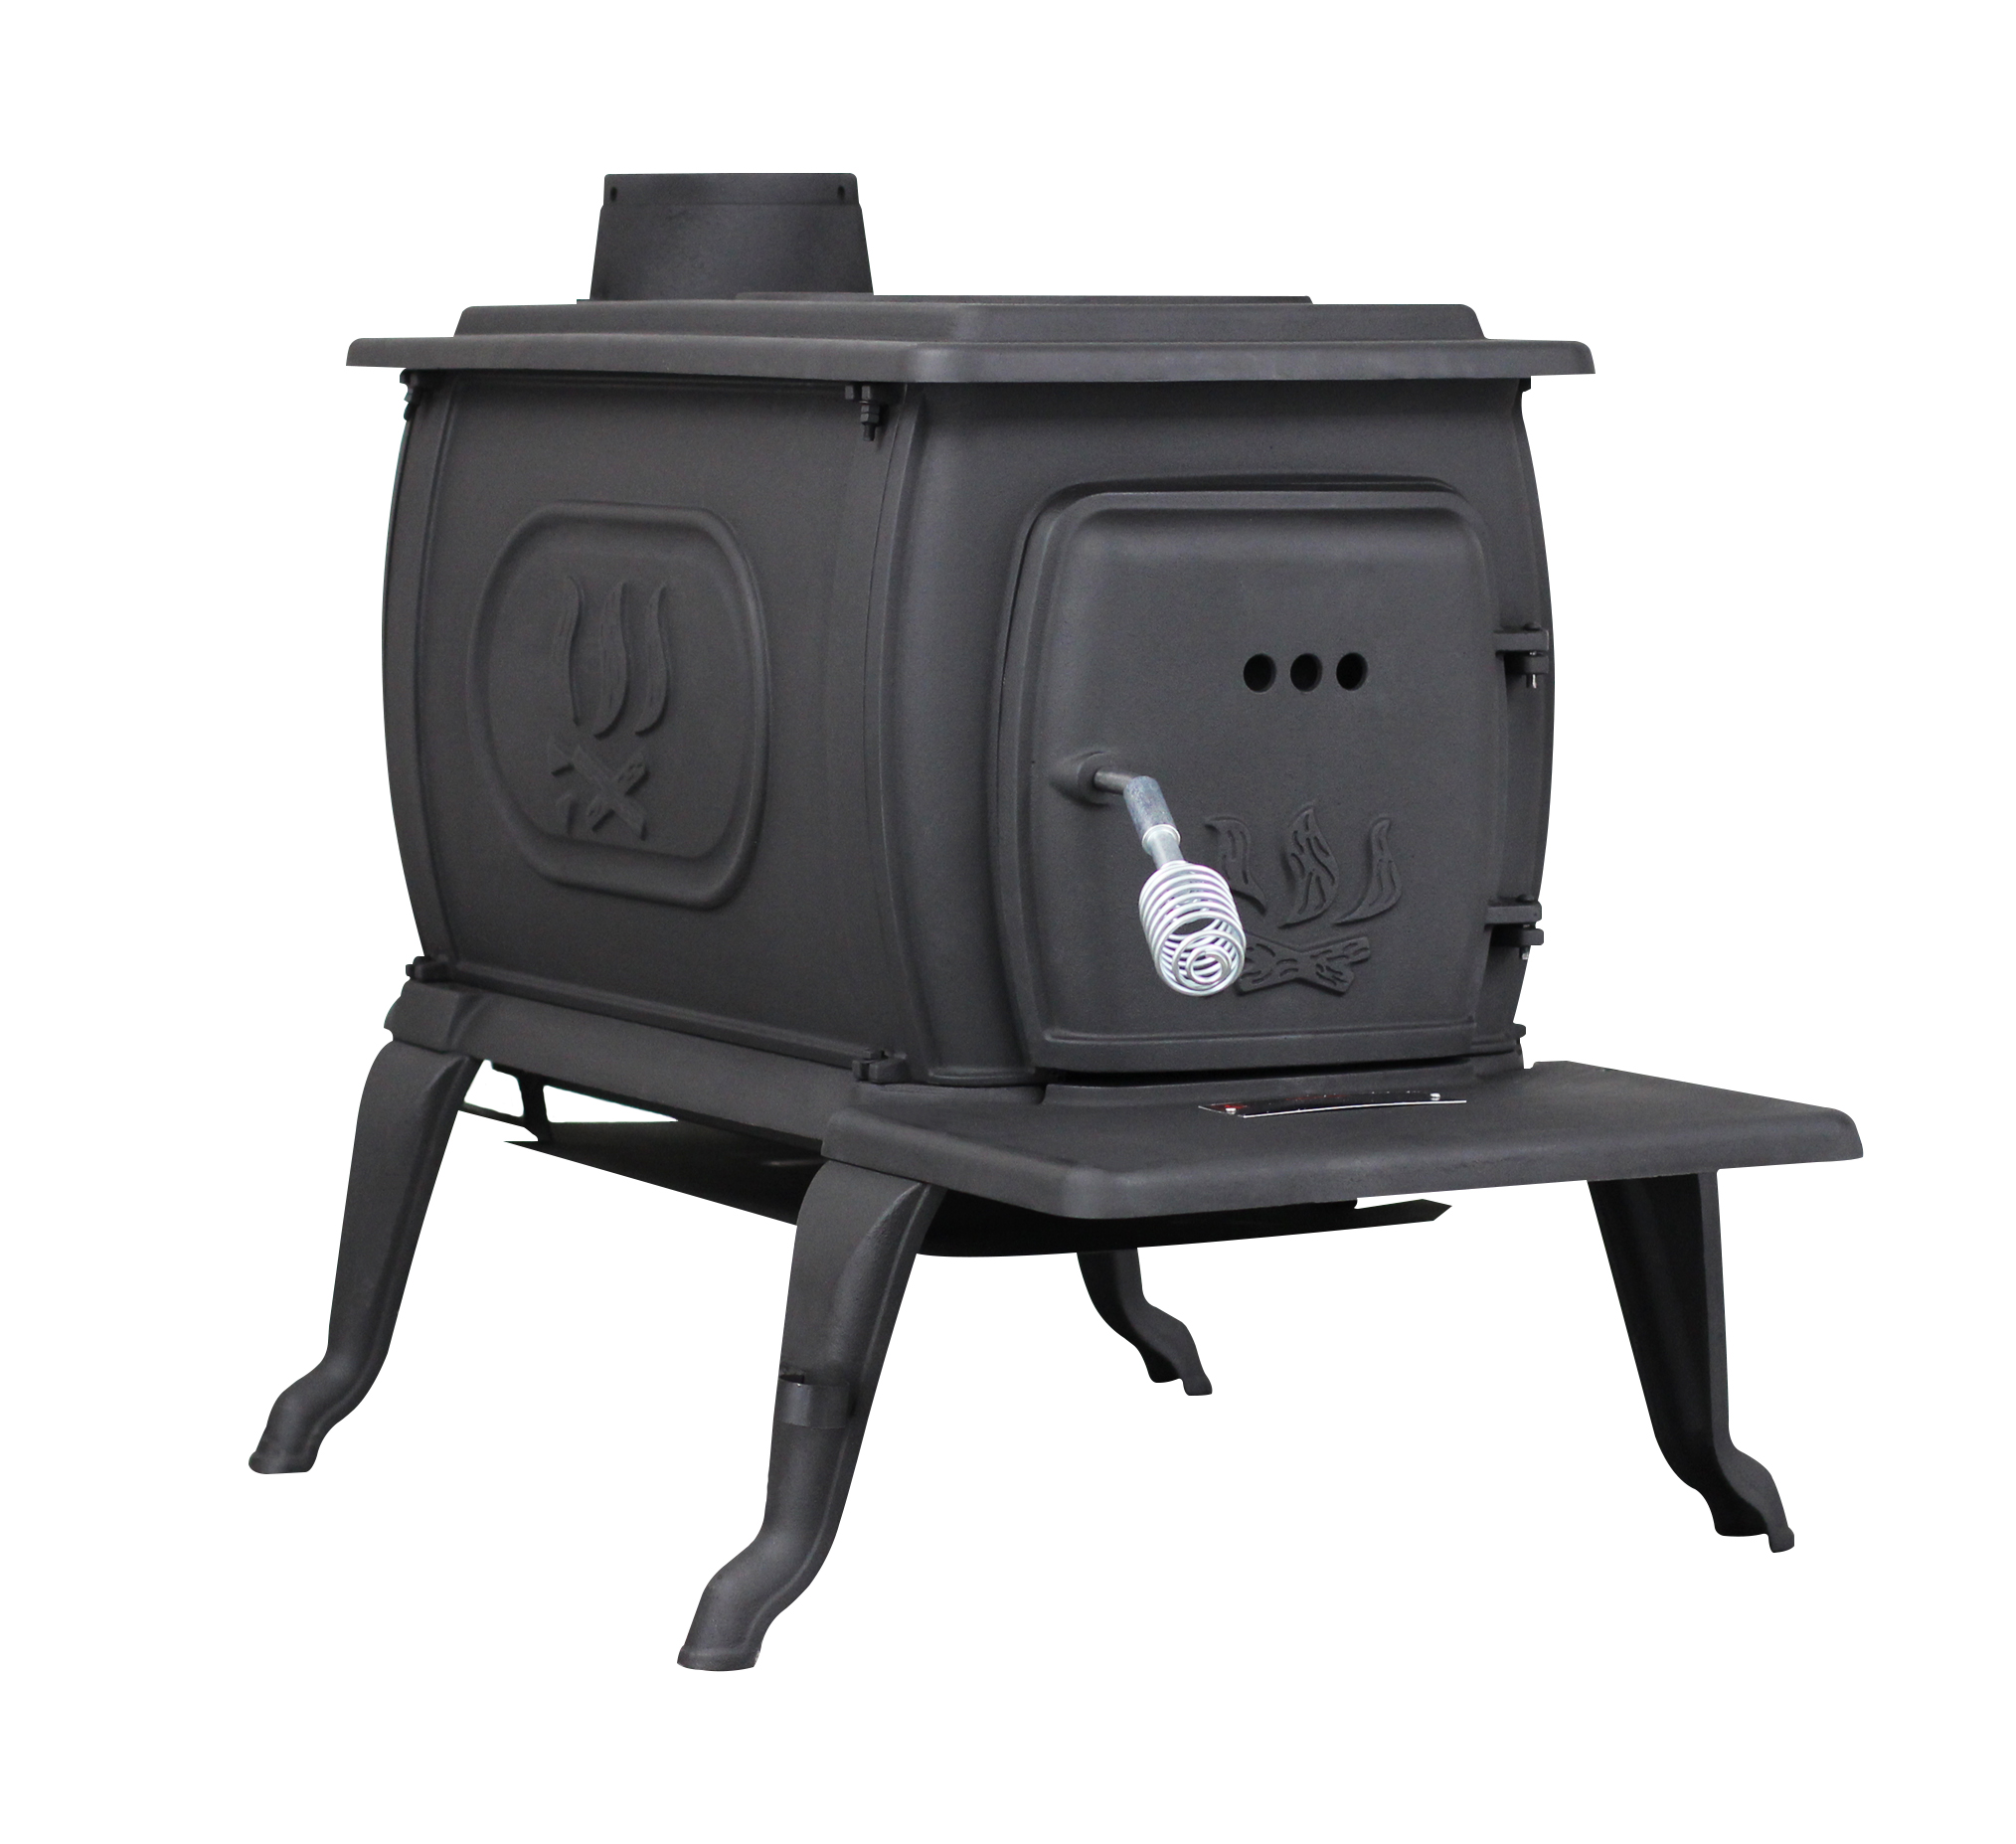 94,000 BTU EPA Certified Cast Iron Logwood Stove, Large